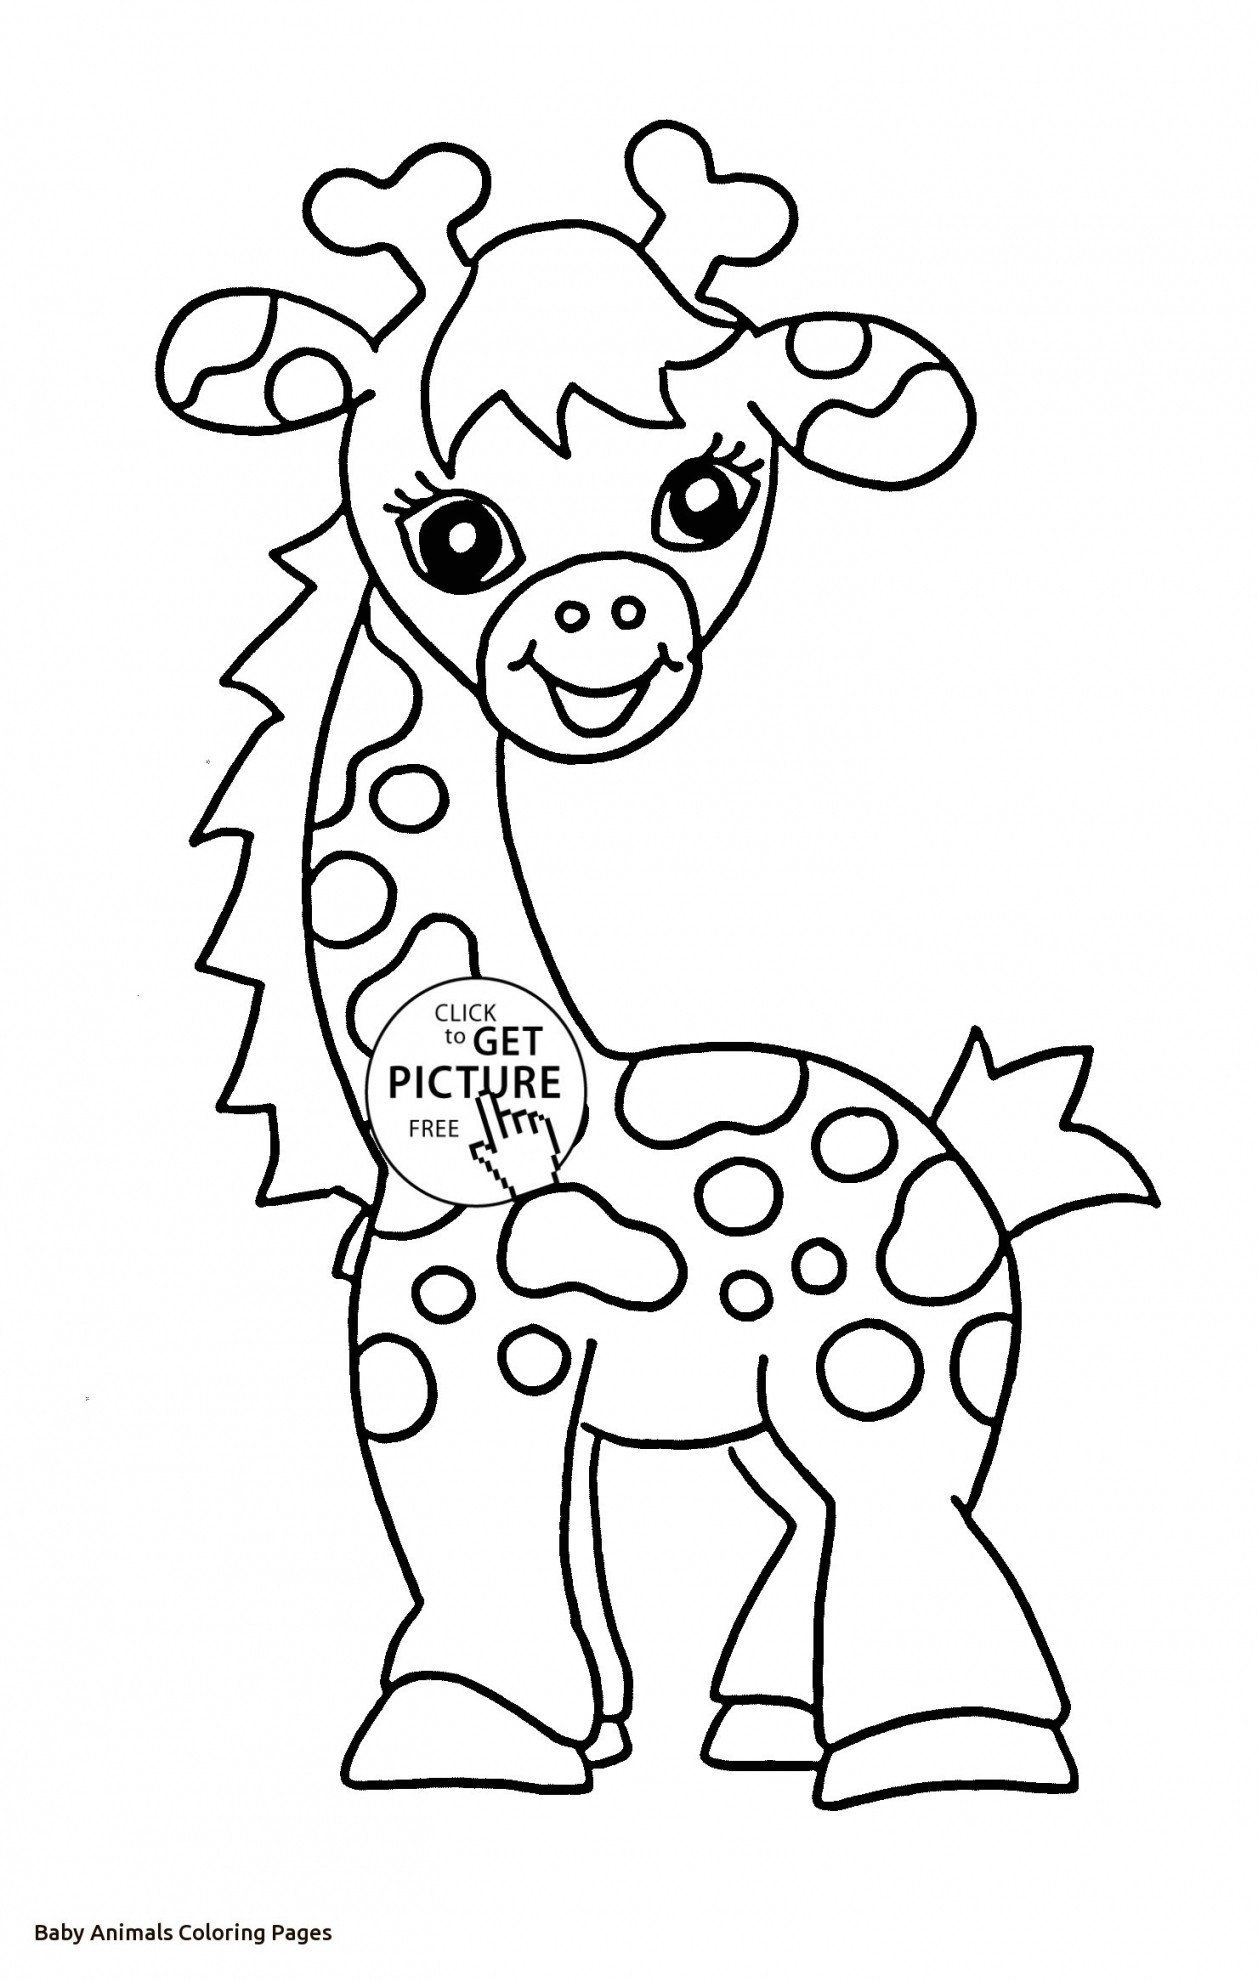 Pin On Animal Coloring Pages Printable And Online